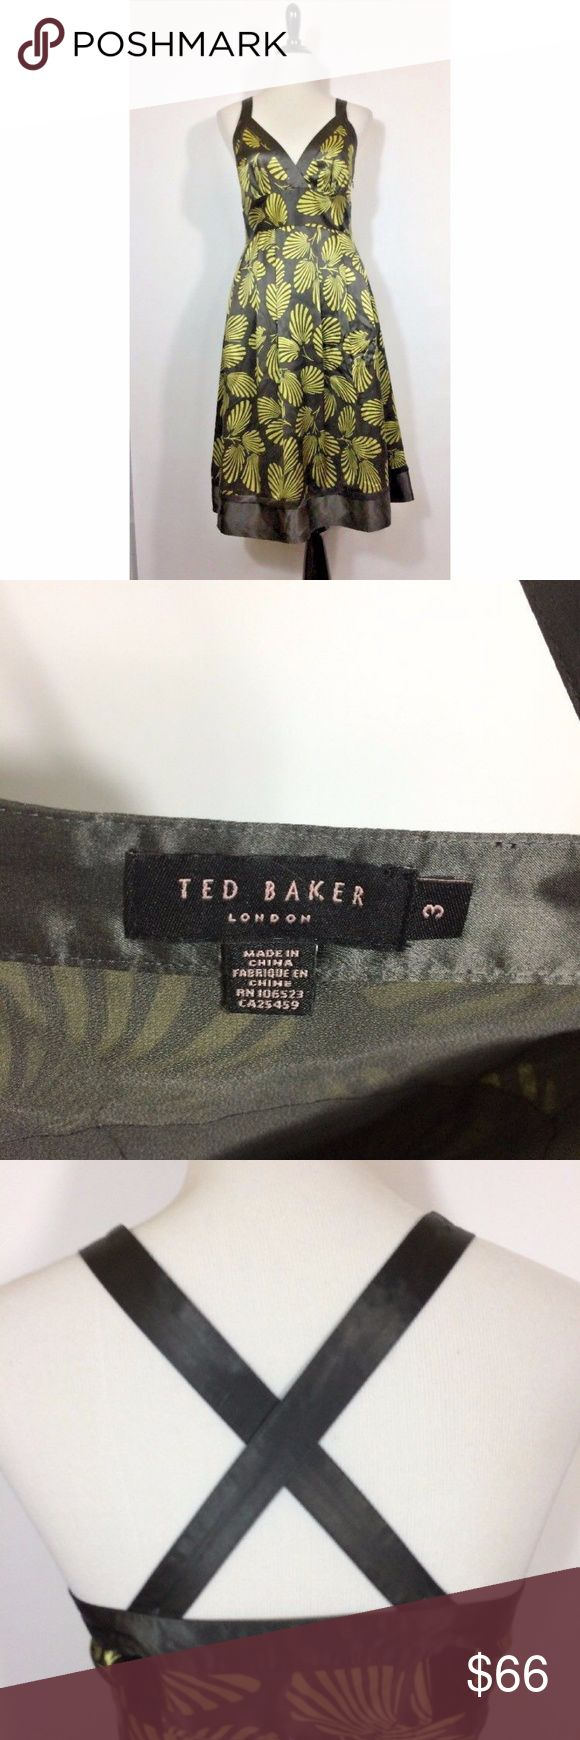 Spotted while shopping on Poshmark: Ted Baker Silk Dress Gray Taupe Green Leaf Print 3! #poshmark #fashion #shopping #style #Ted Baker #Dresses & Skirts